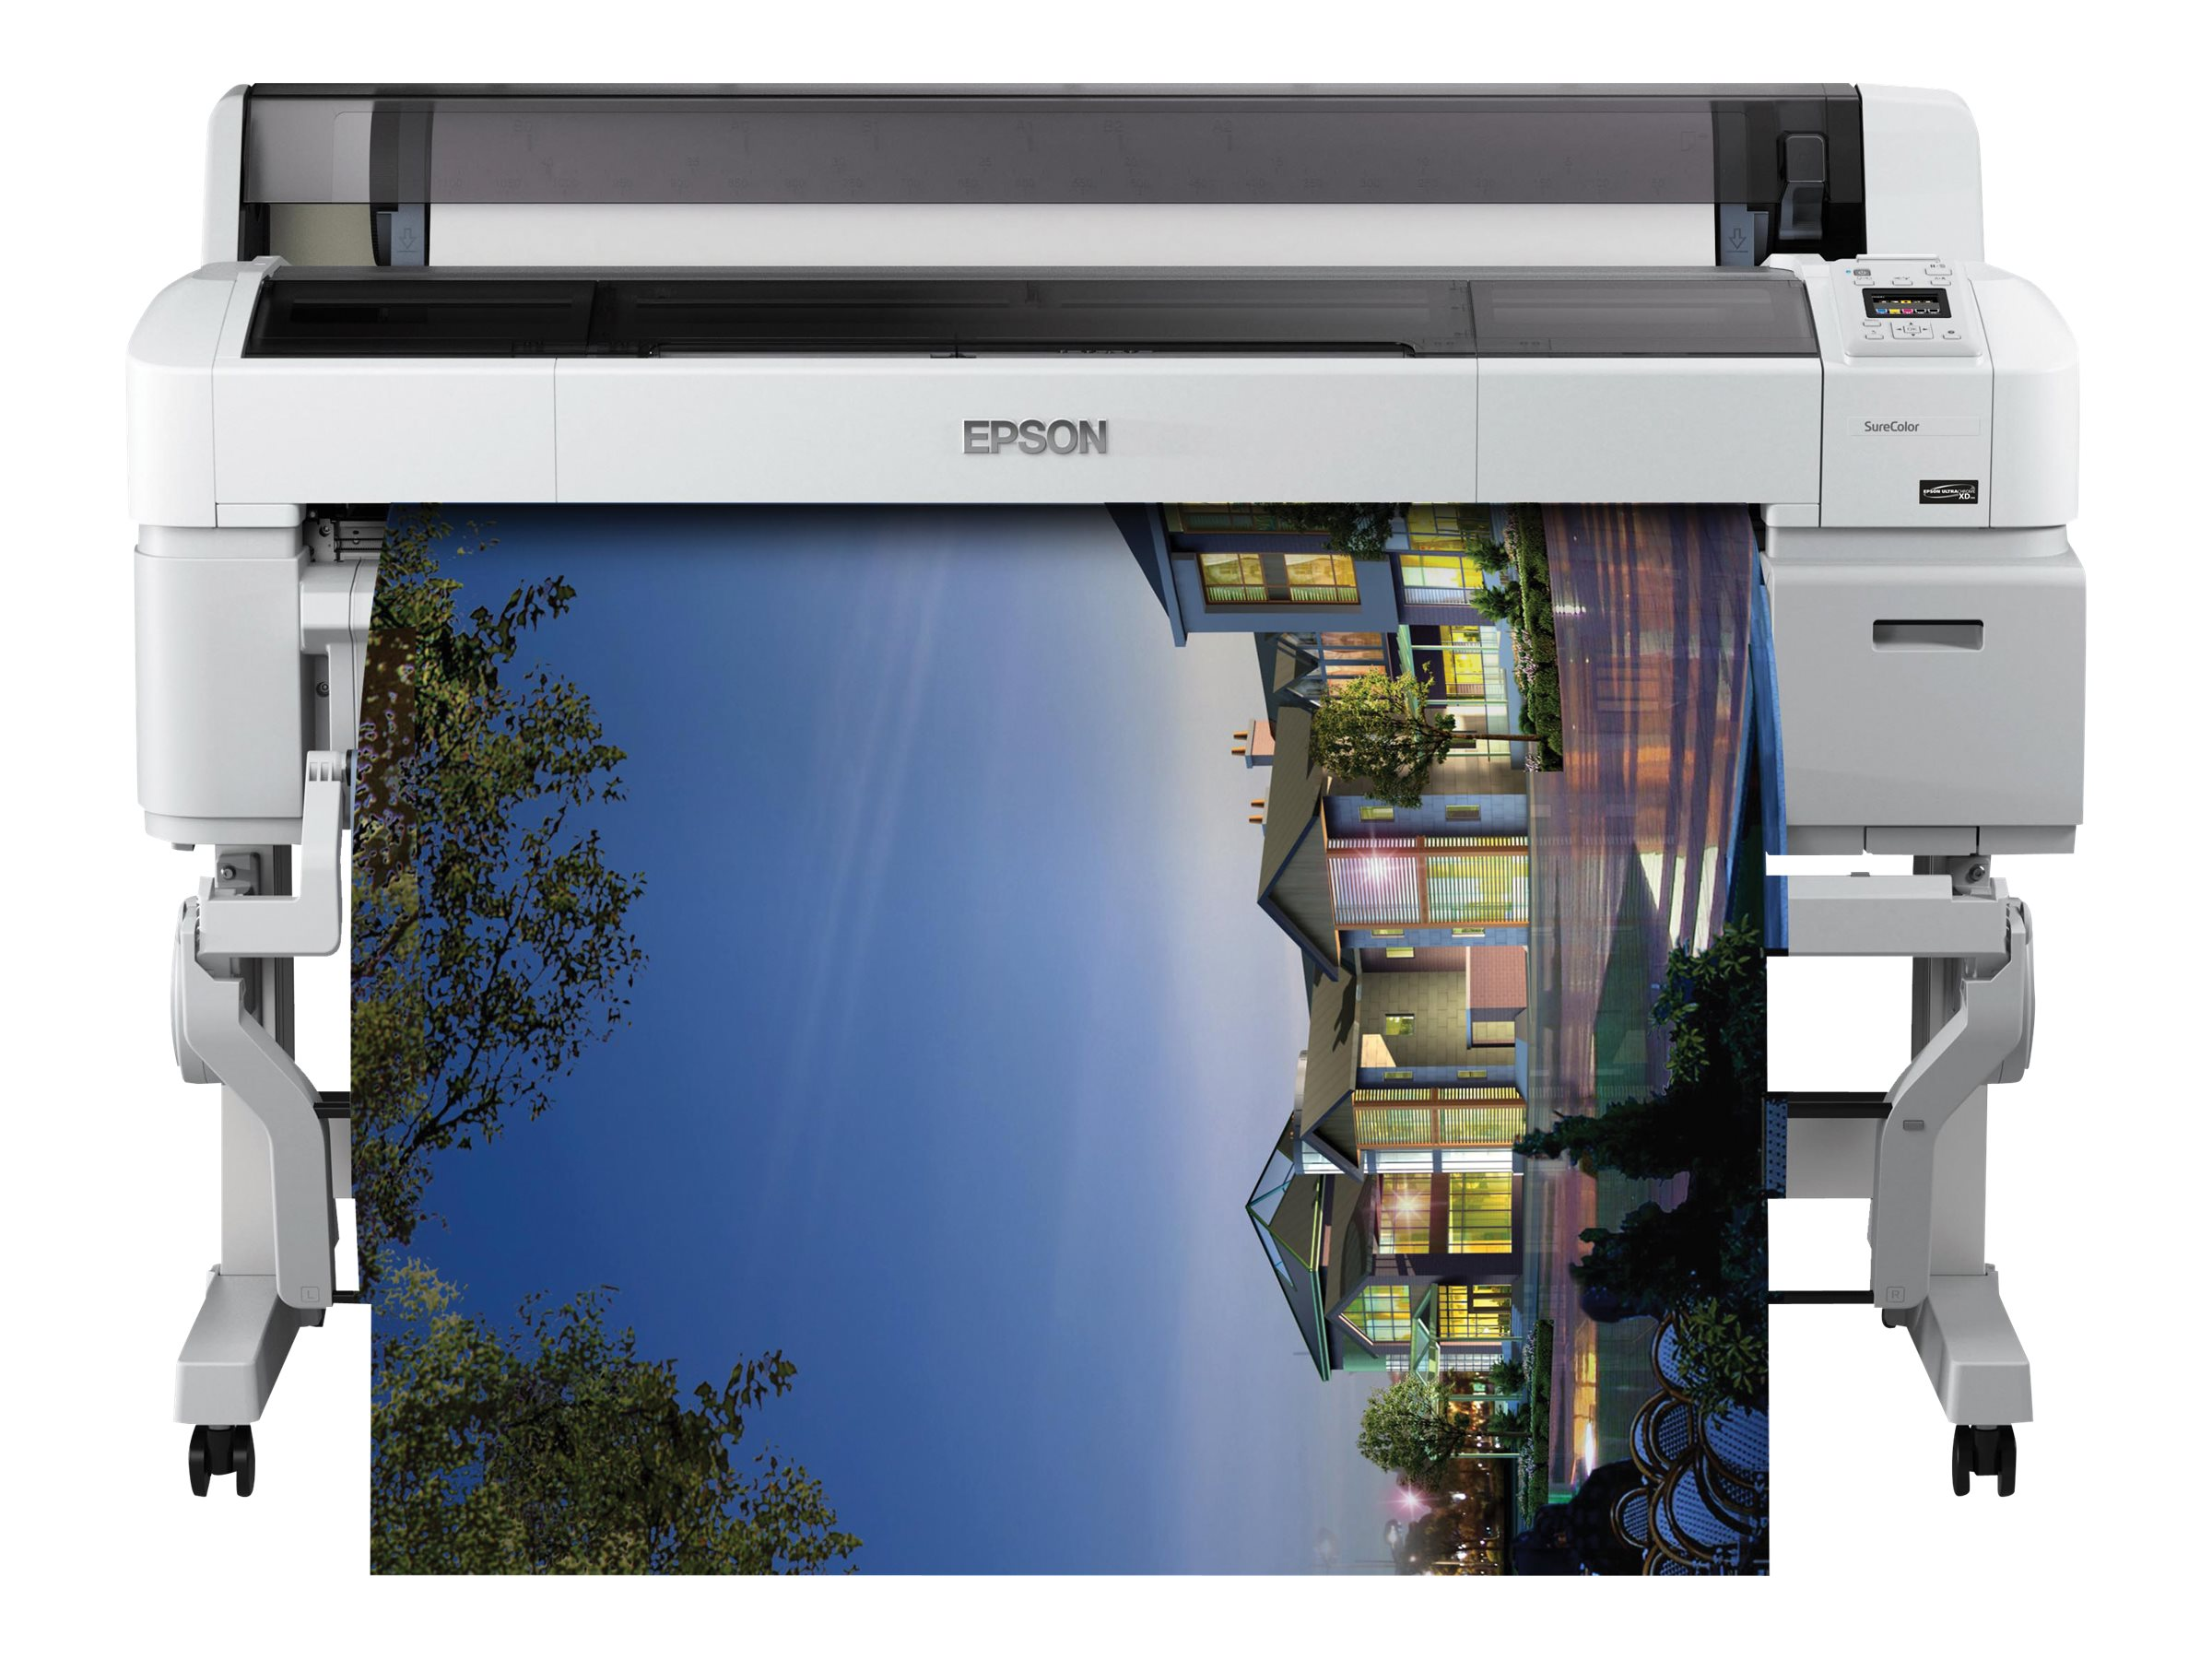 Epson SureColor T7270 Printer - $4995 less instant rebate of $1000.00, SCT7270SR, 17930546, Printers - Large Format